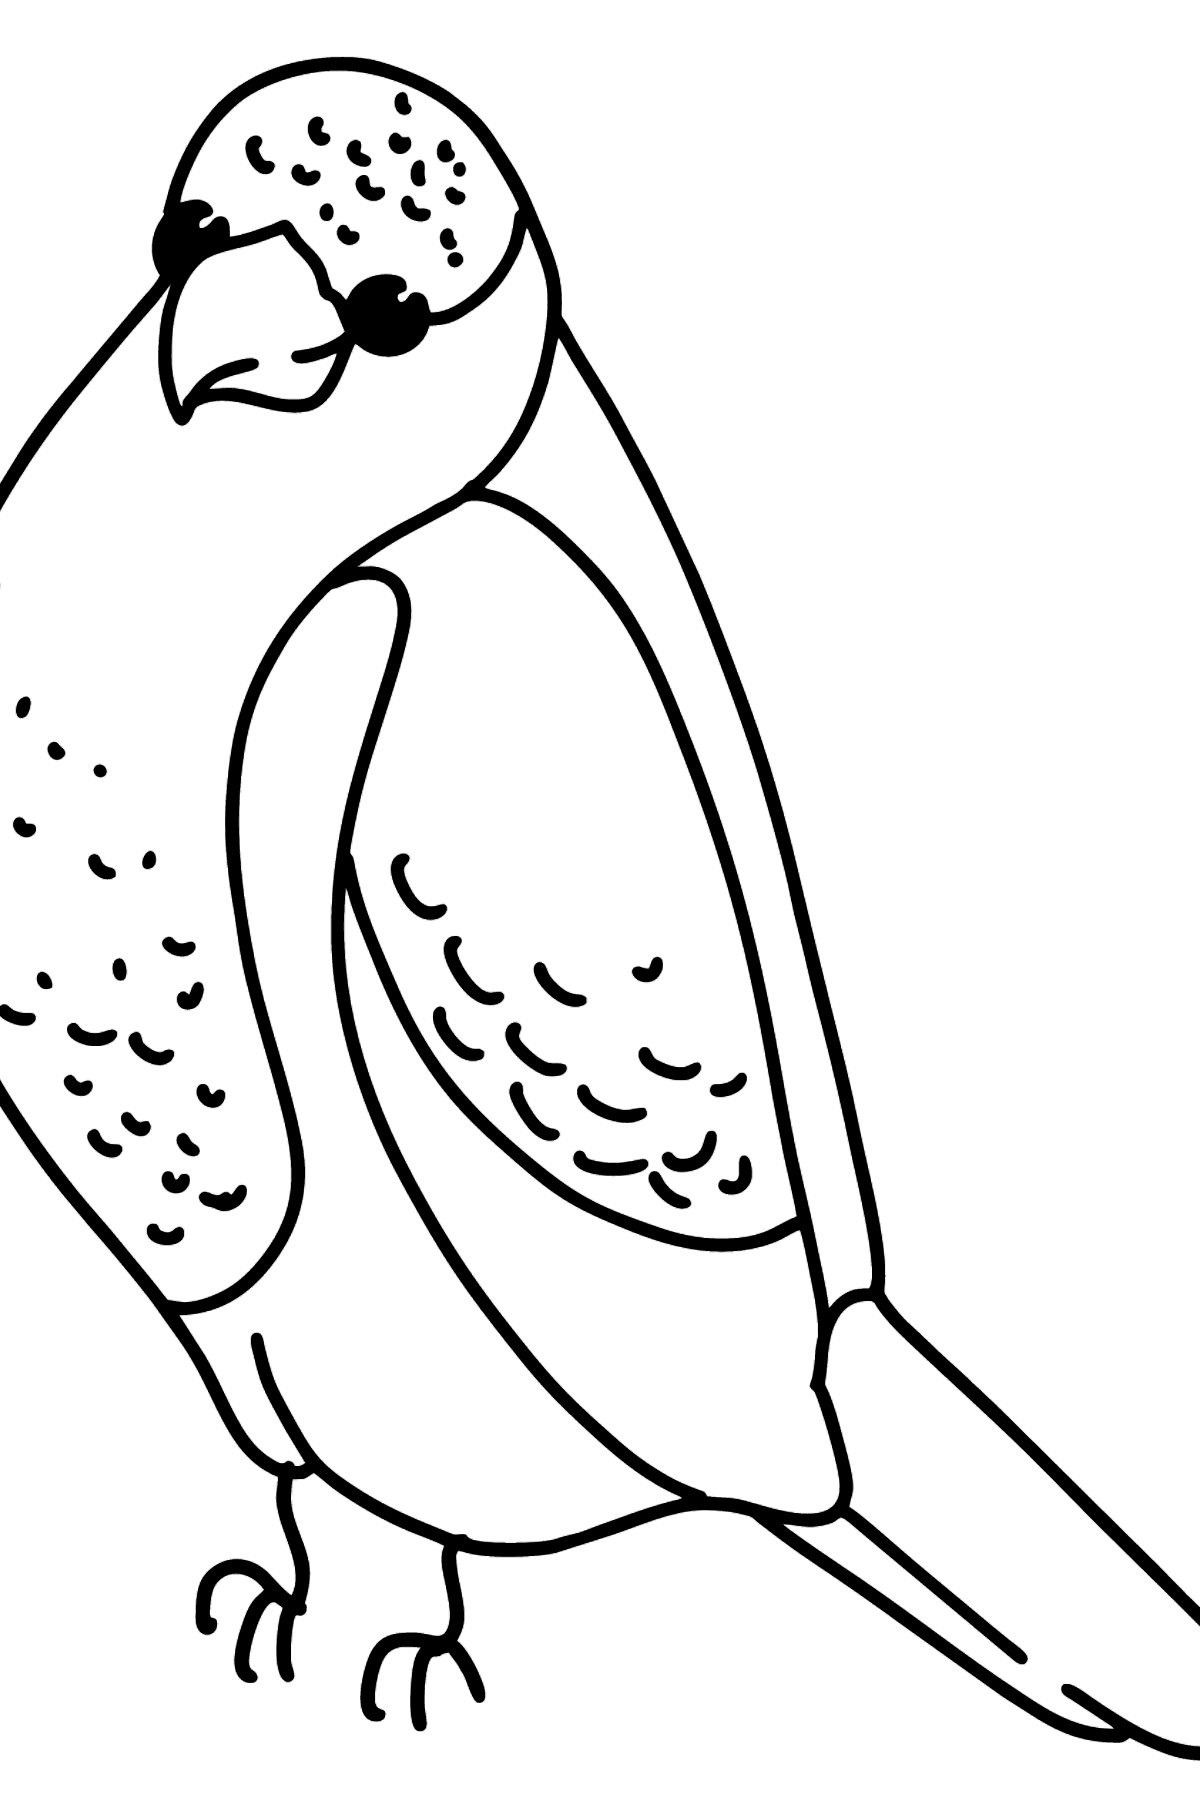 Simple coloring page with a Parrot - Coloring Pages for Kids